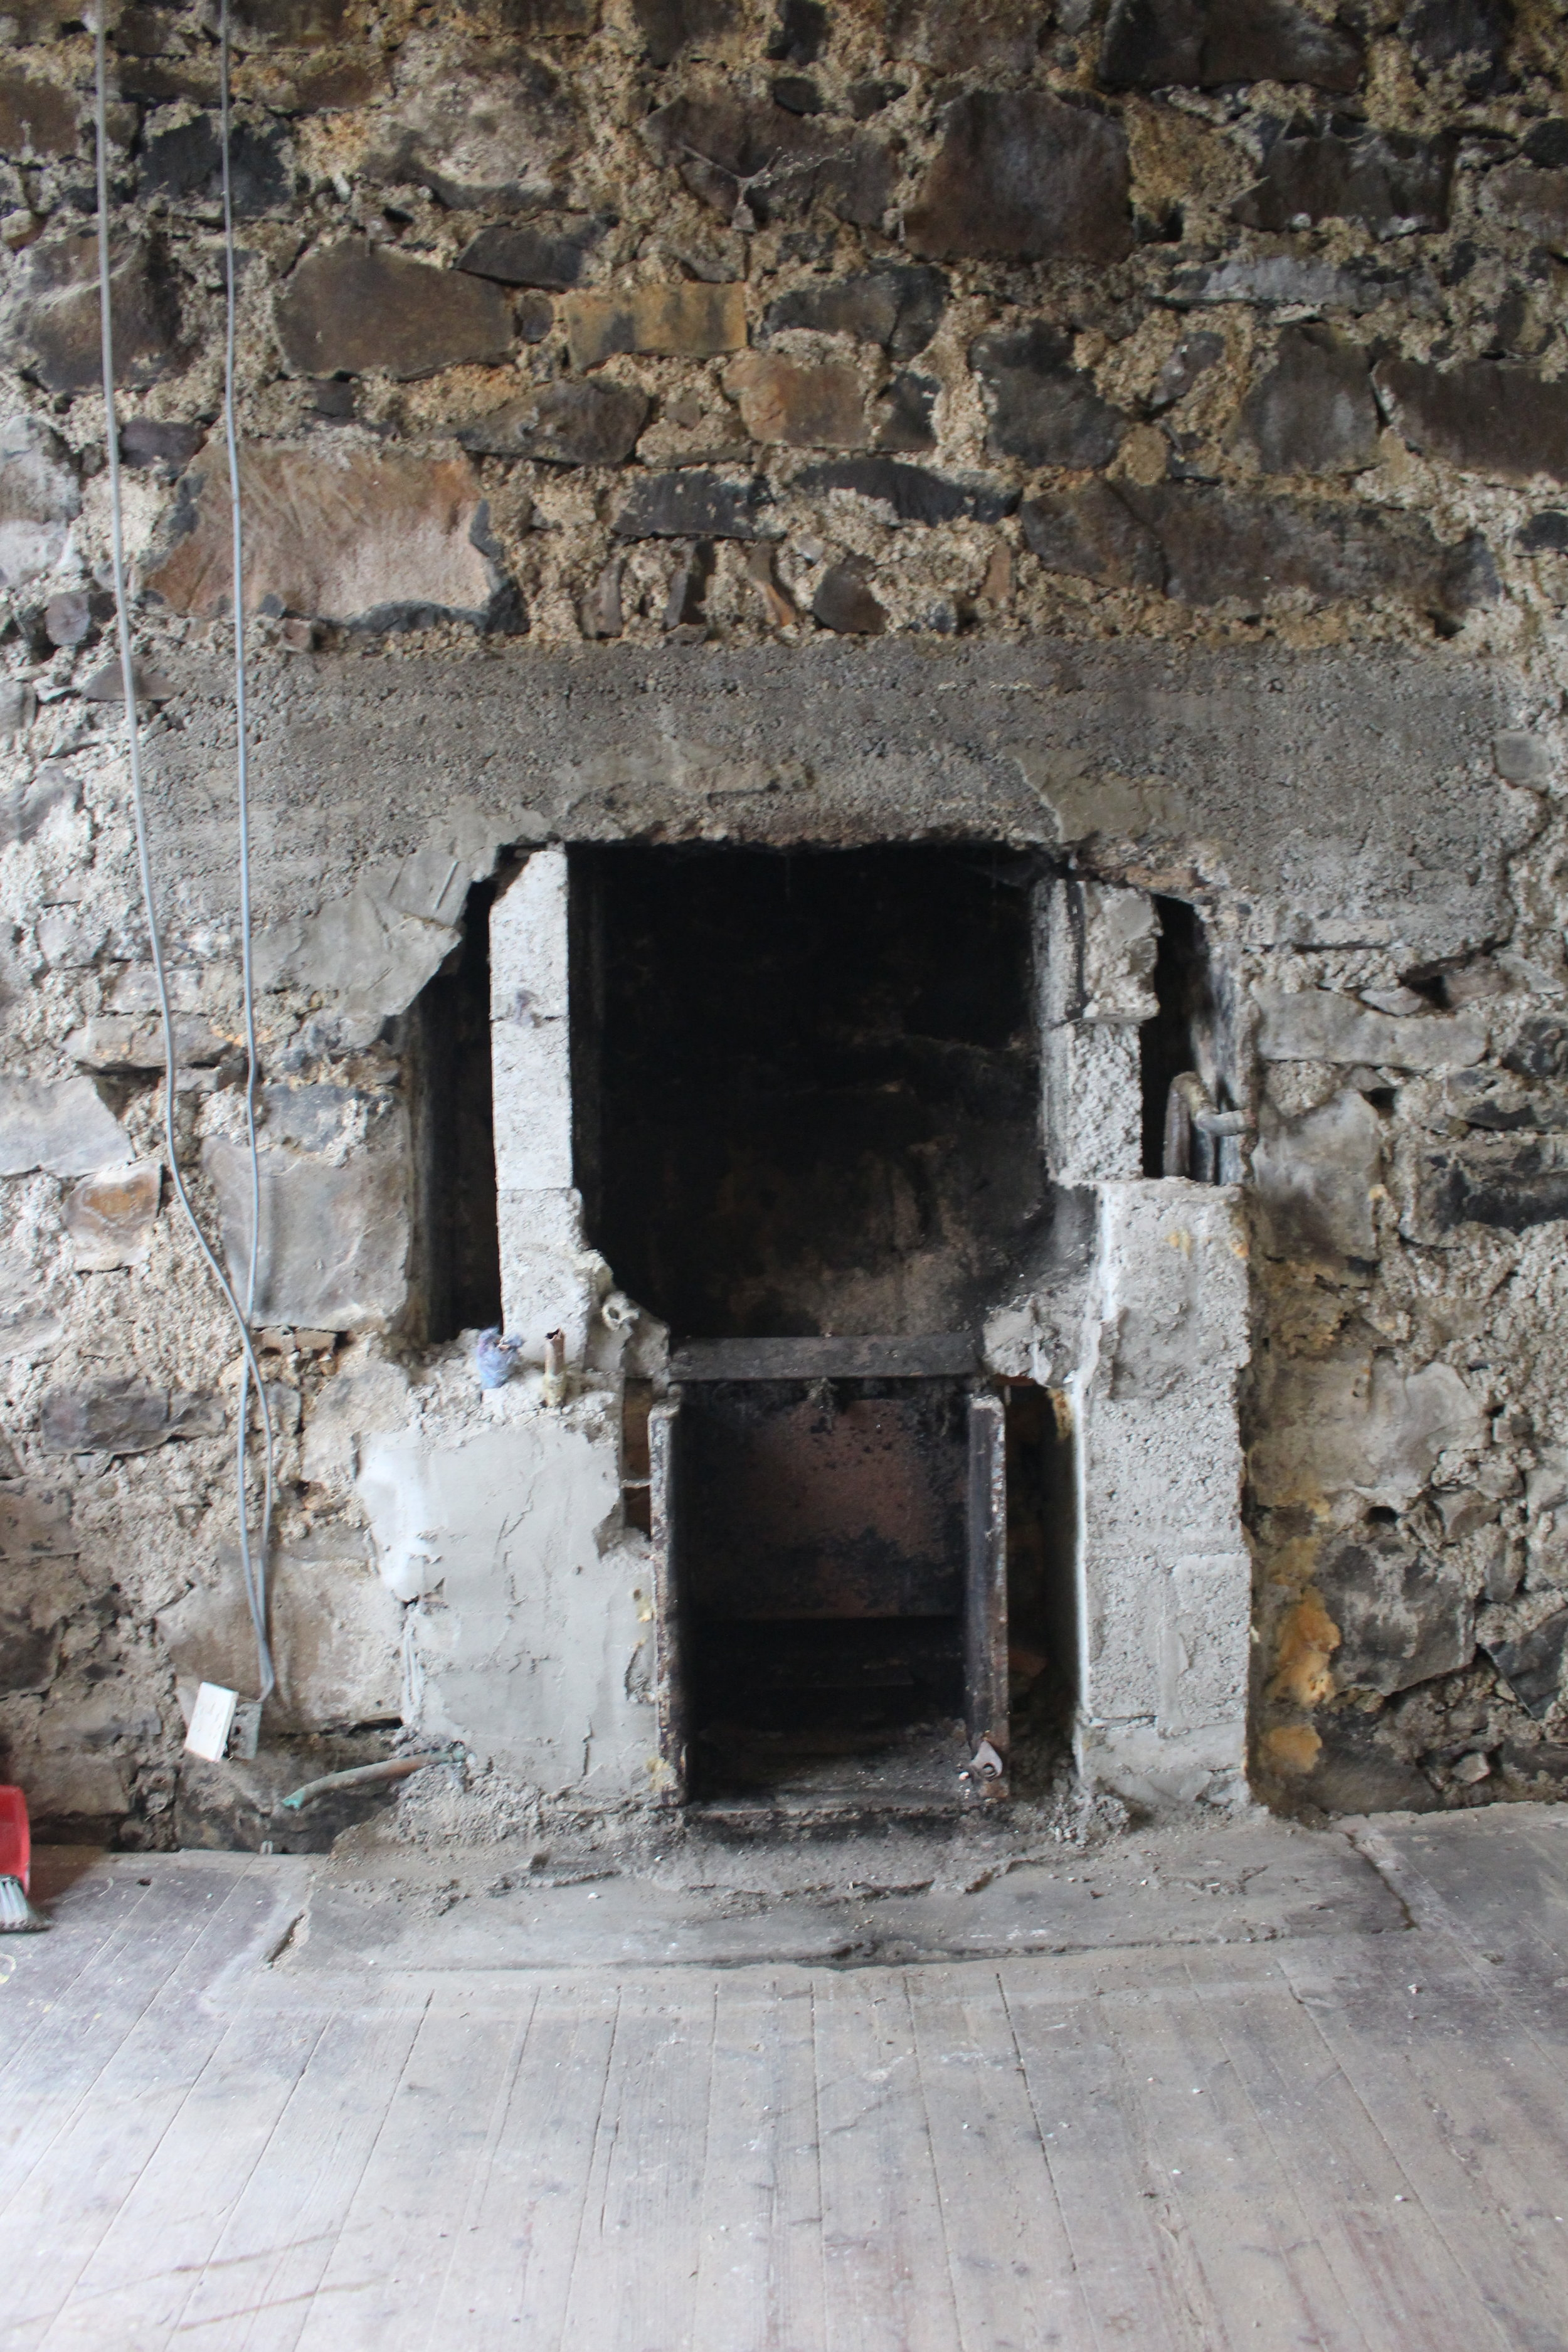 Whilst removing the block work built around the stove, we noticed that the original lintel, comprising of iron straps between layers of rough poured concrete, had been chopped into to fit in the blockwork.